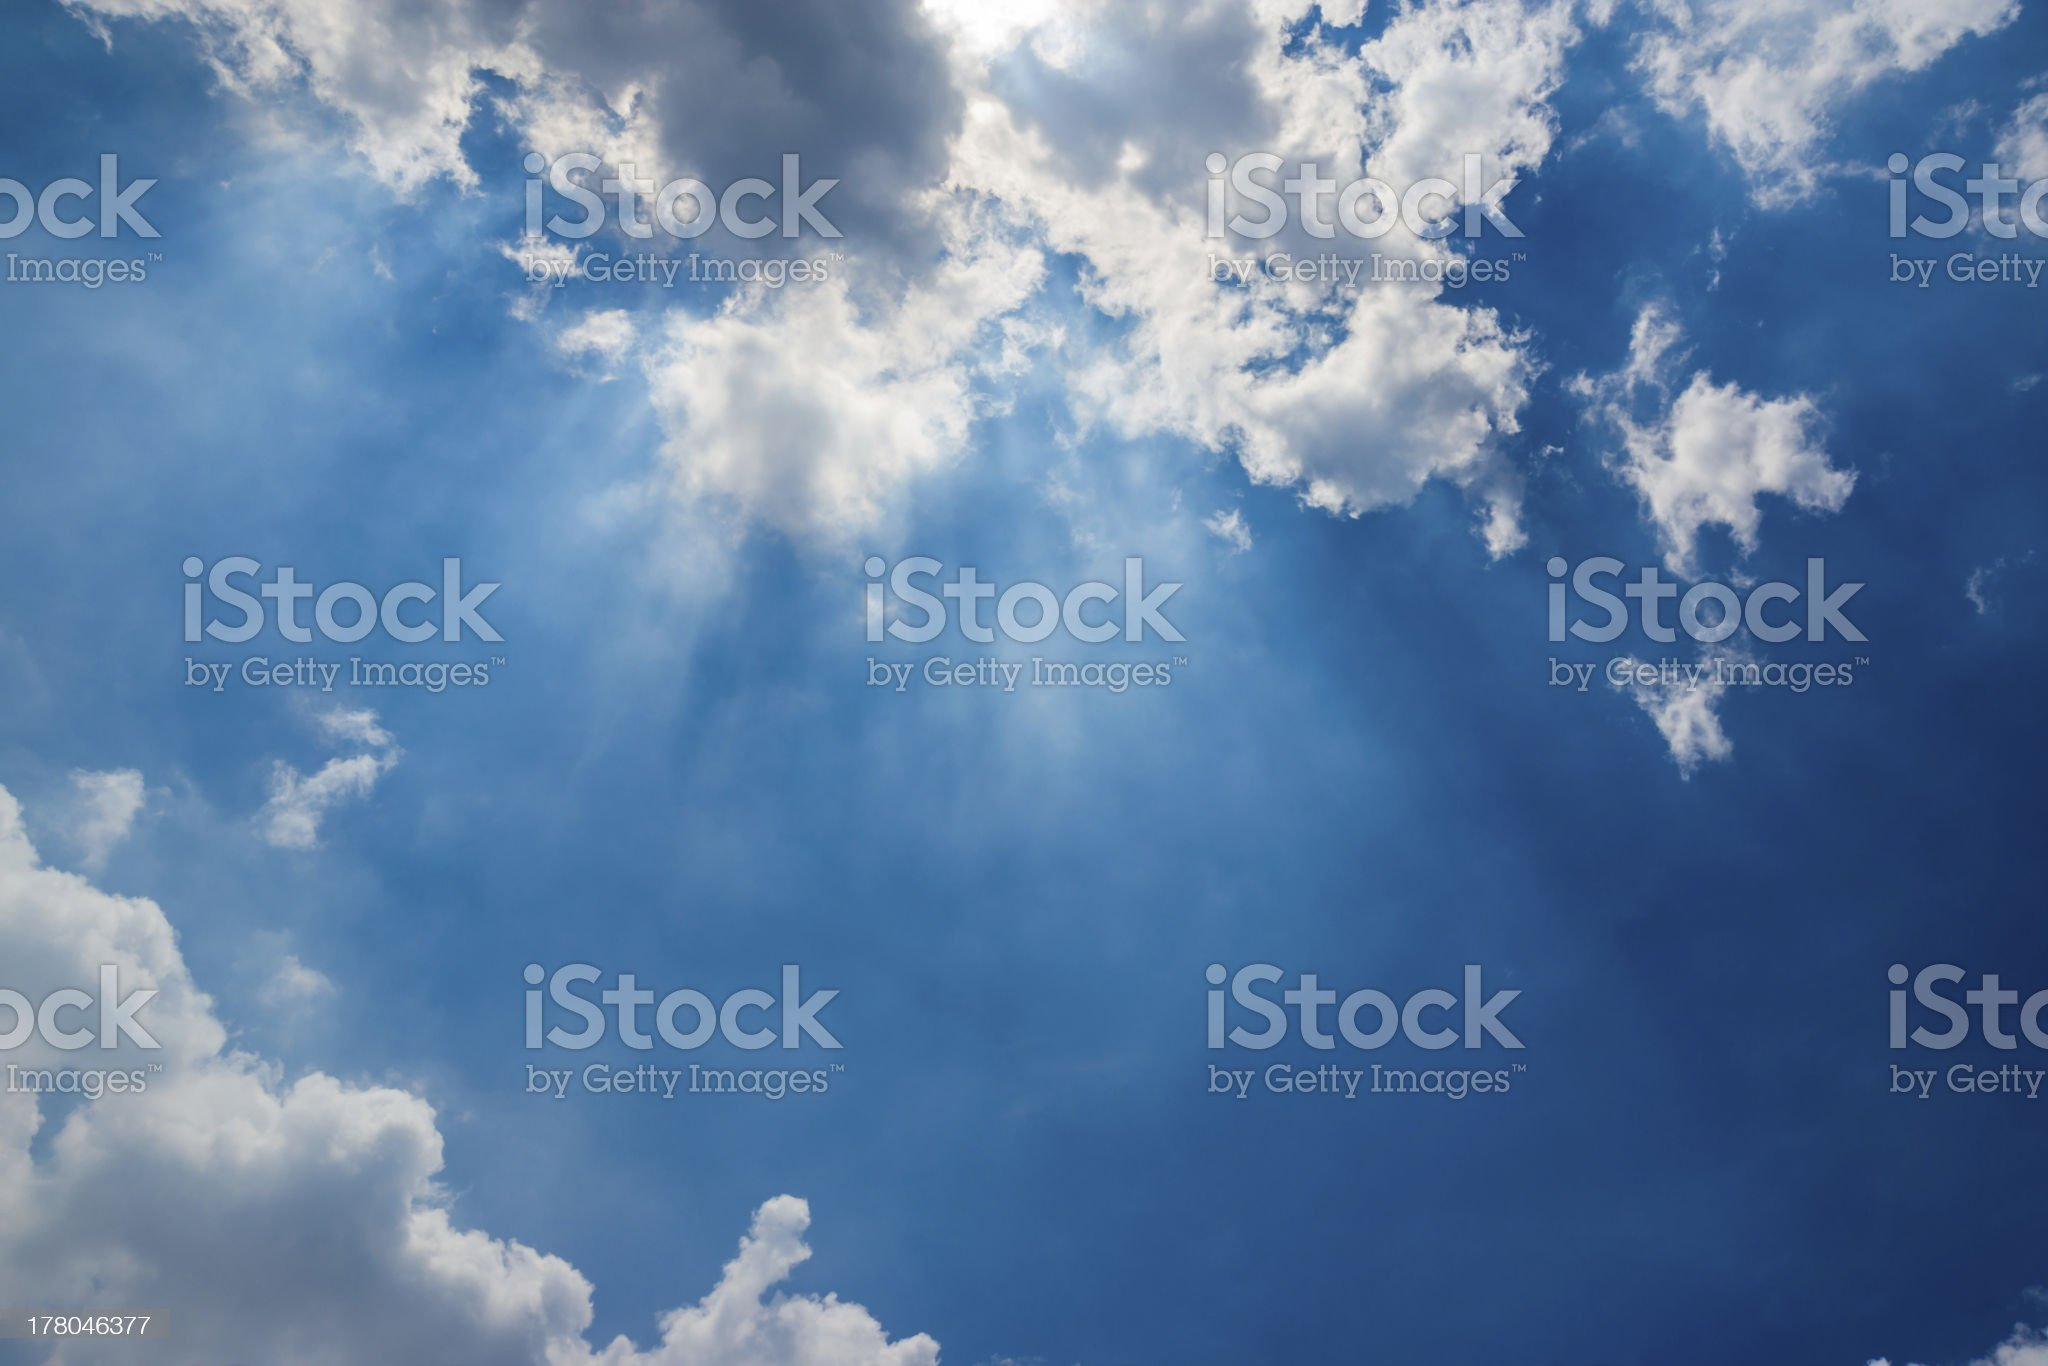 Every Cloud has a silver lining royalty-free stock photo